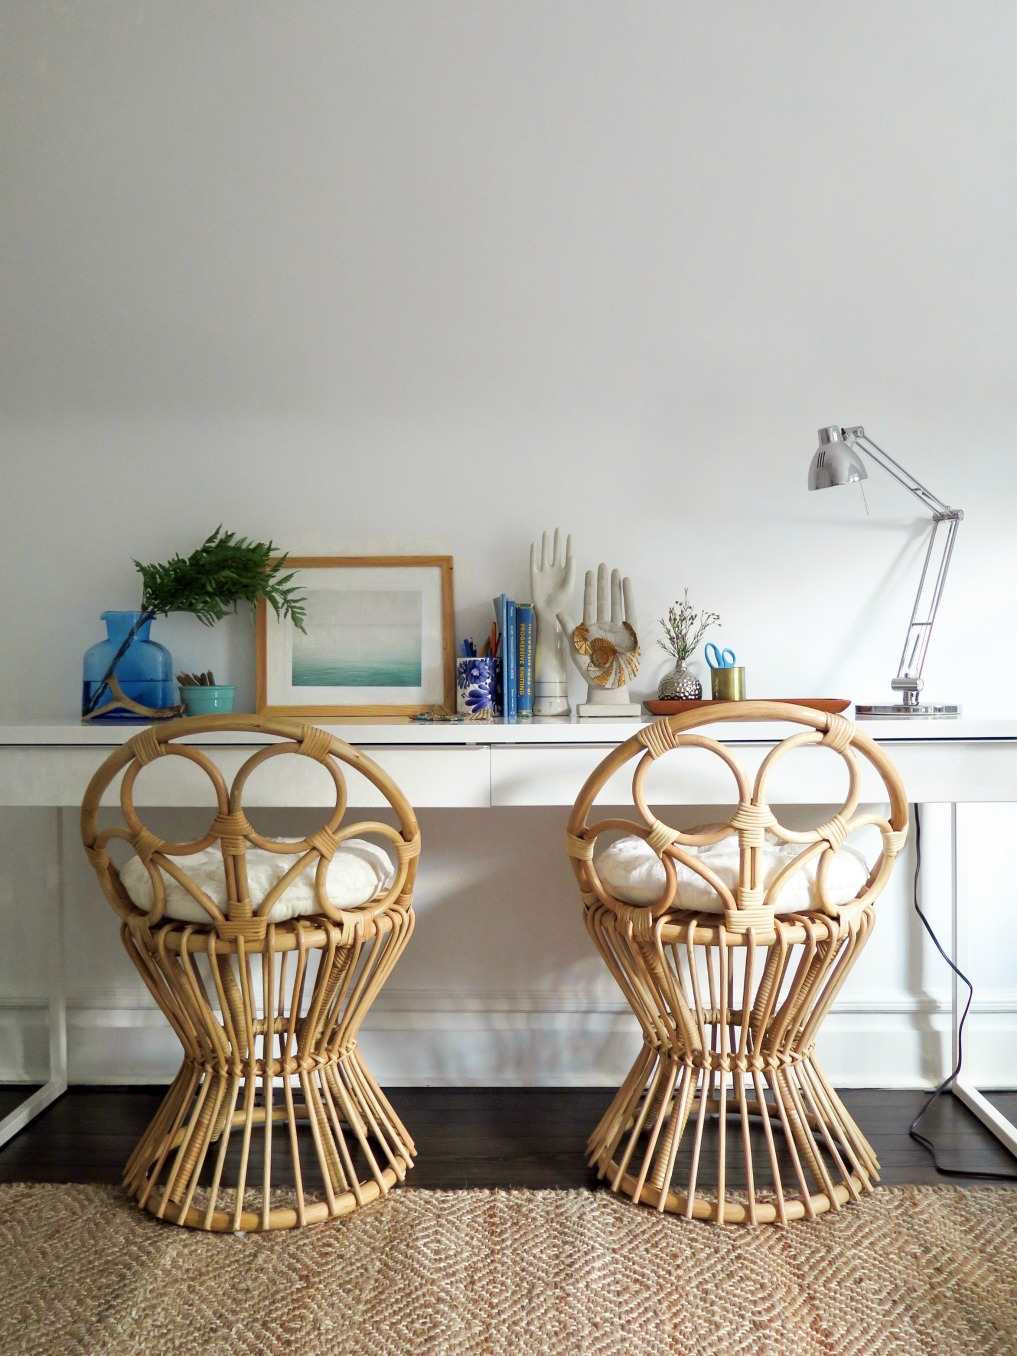 Rattan desk chairs